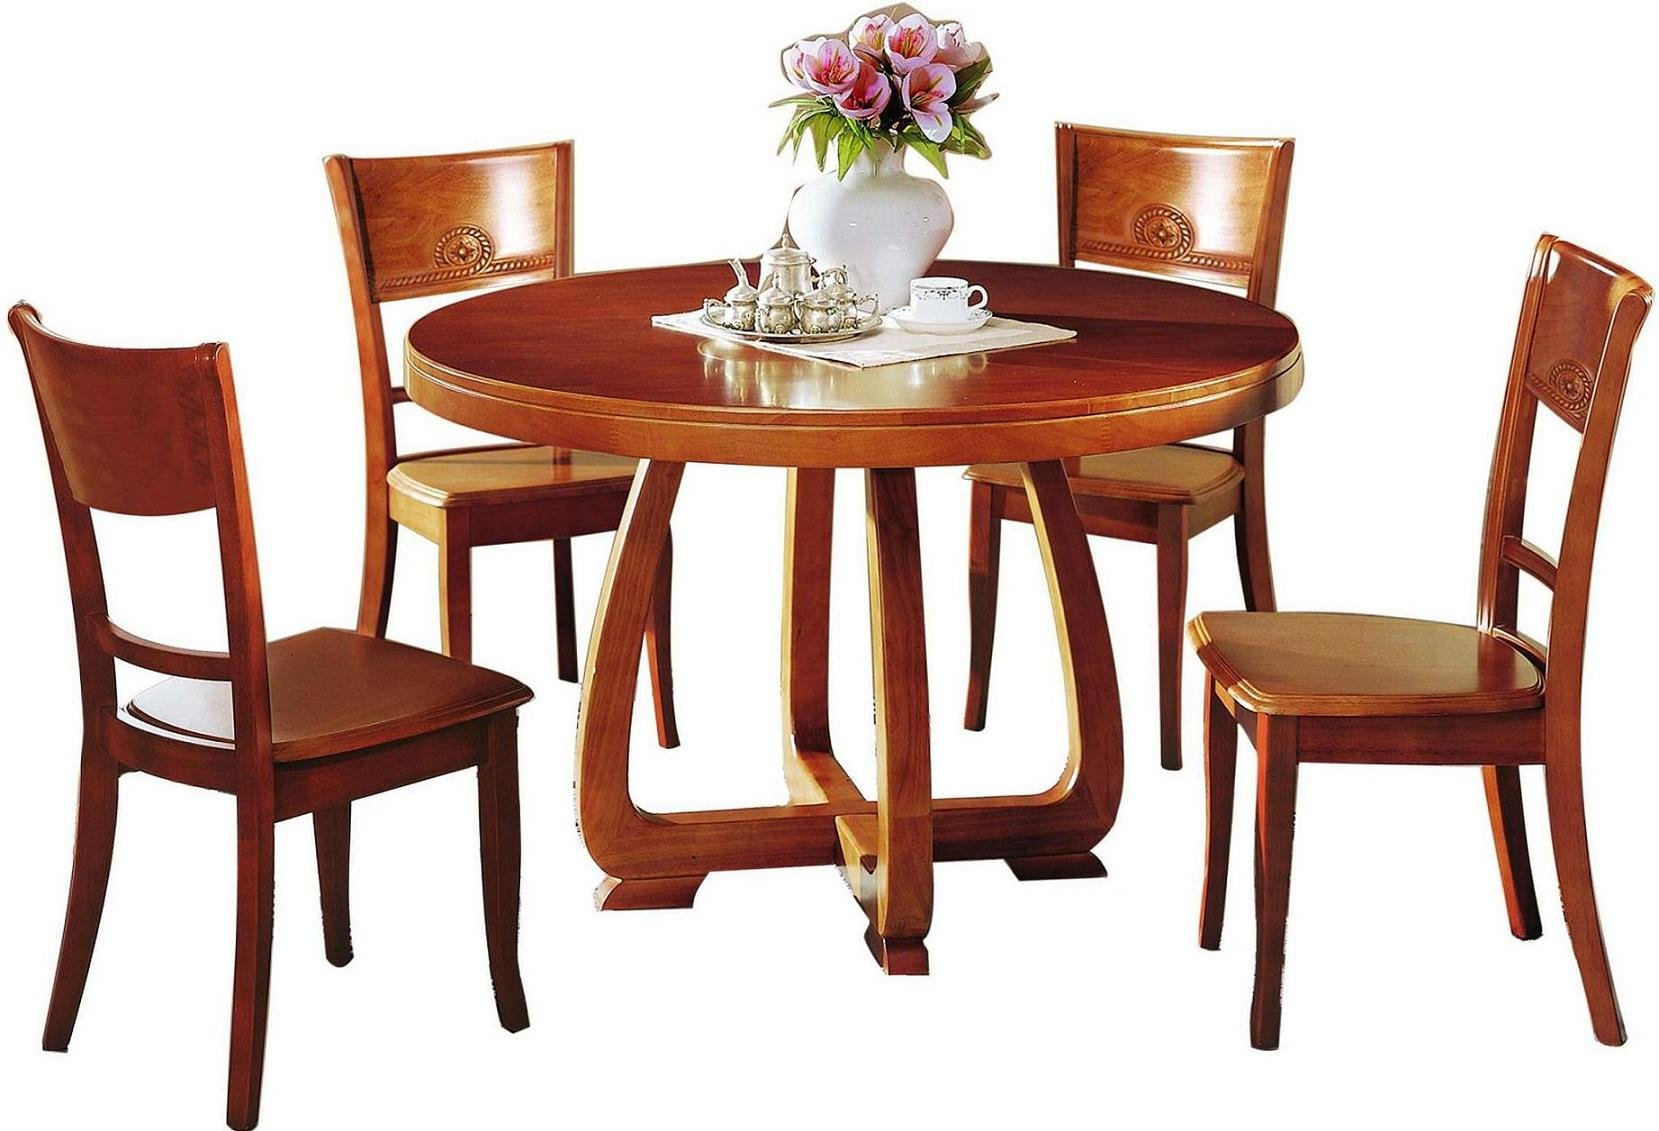 wooden dining tables and chairs photo - 8